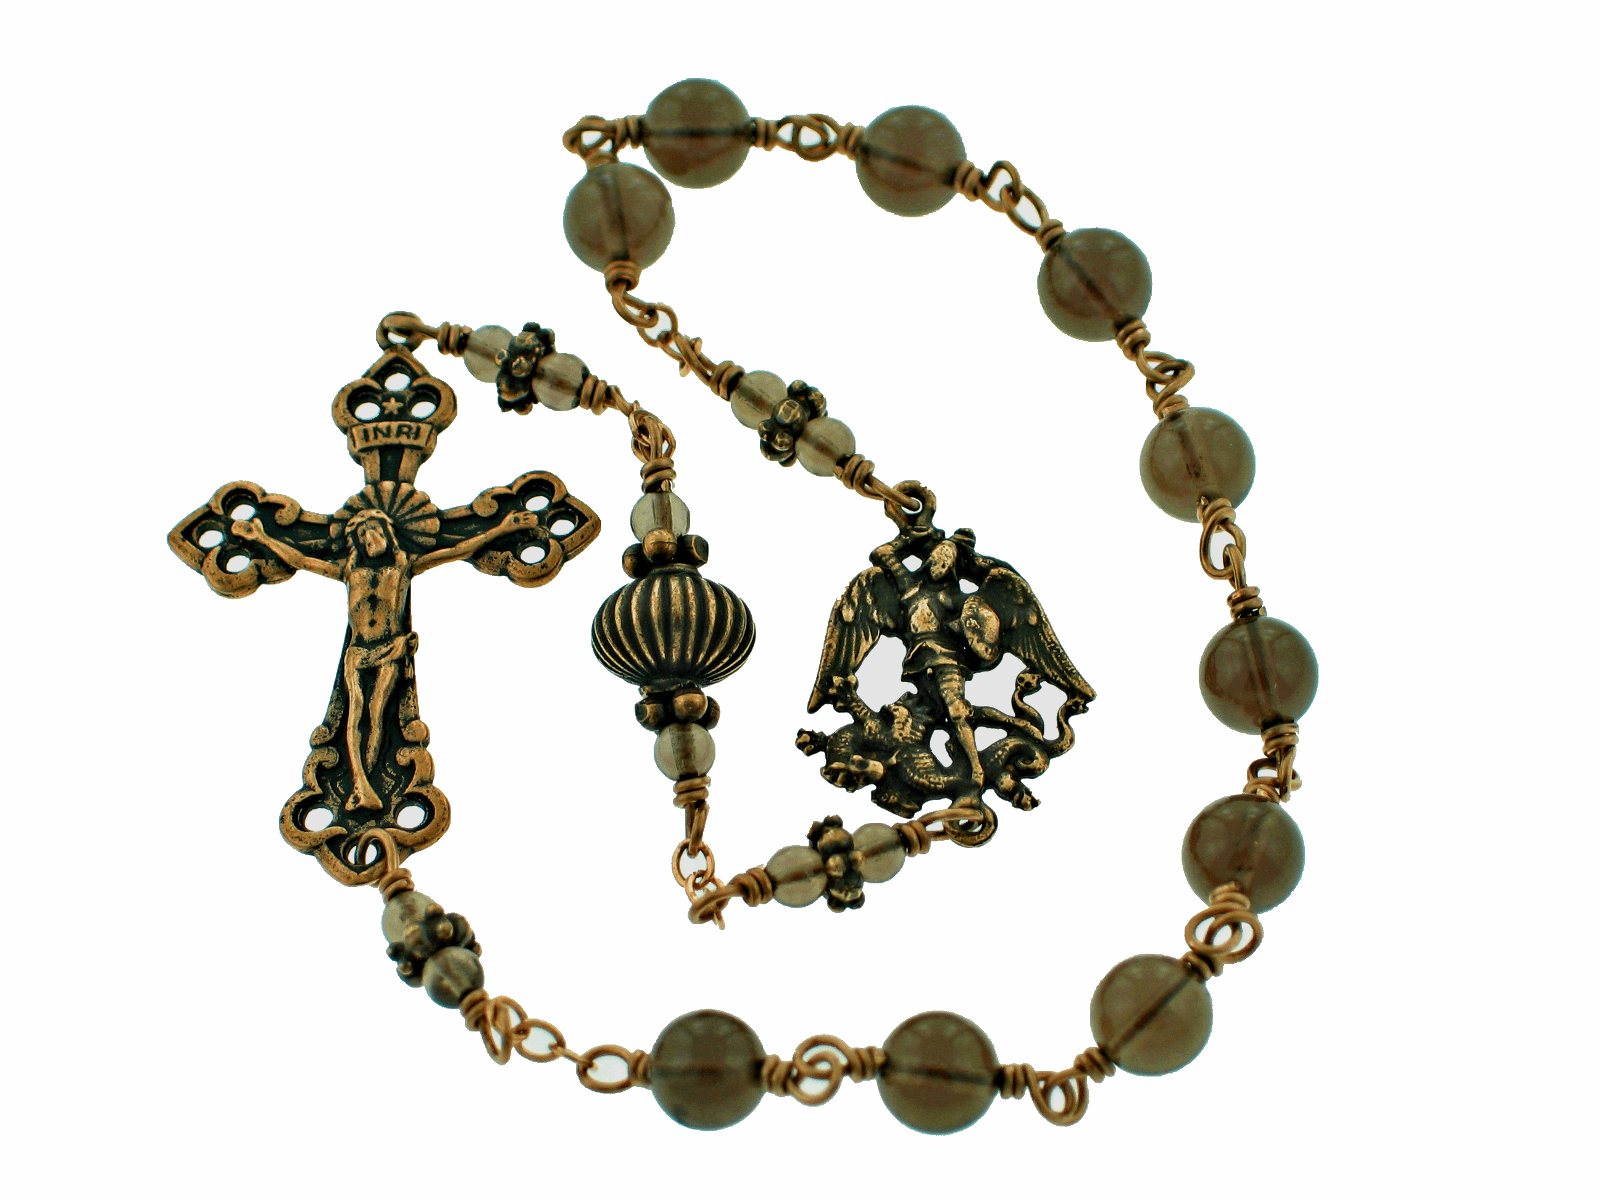 Bronze Kant-Tangle St Michael the Archangel Smoky Quartz Pocket Rosary